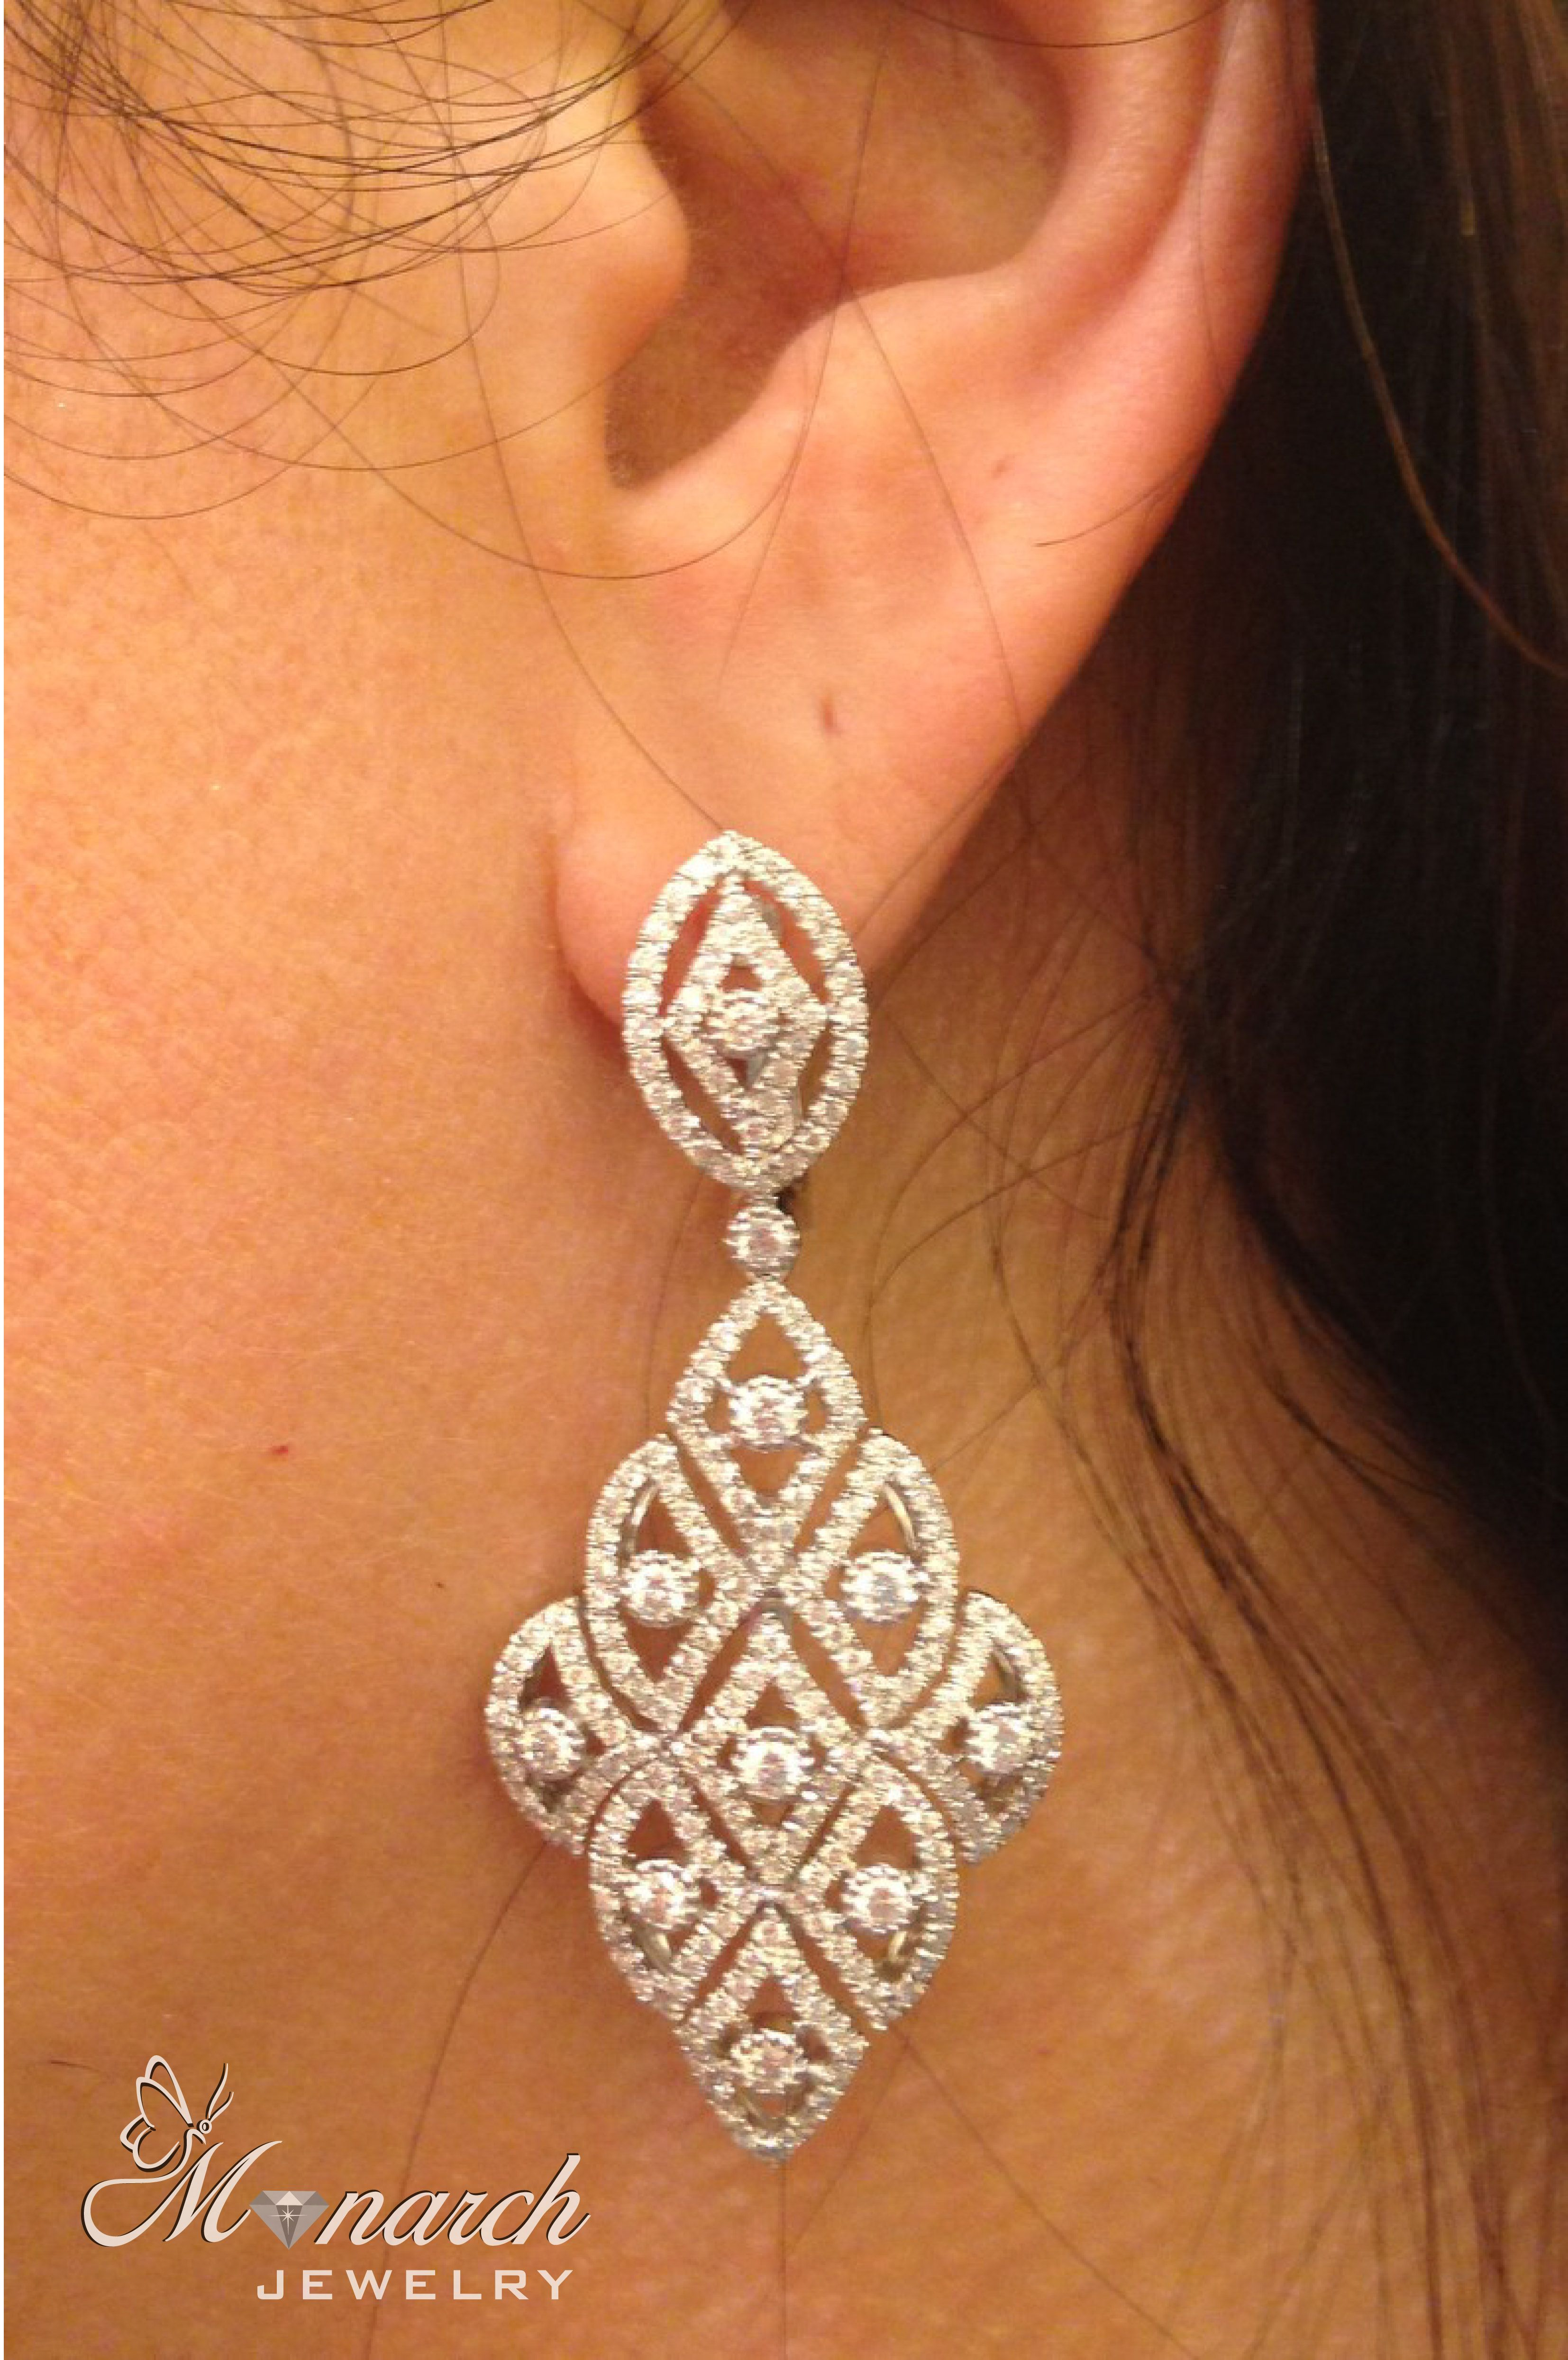 Diamond Earrings Live From Las Vegas Jck Jewelry Show With Monarch